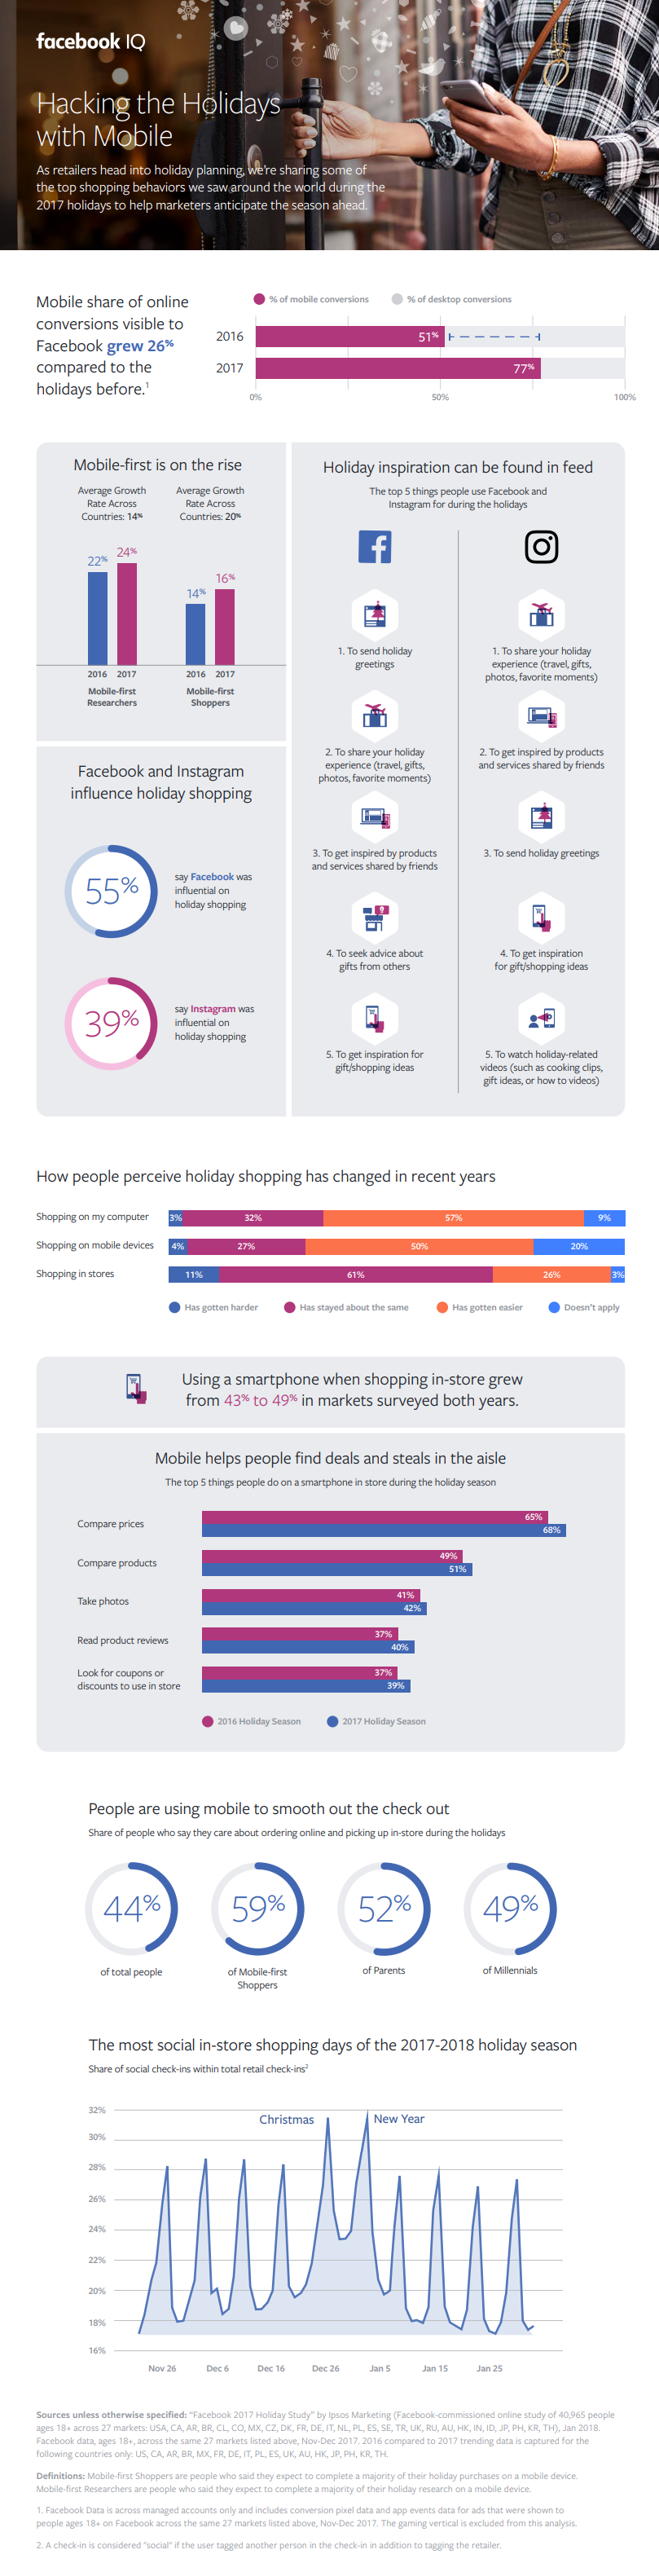 Facebook holiday shopping trend insights infographic